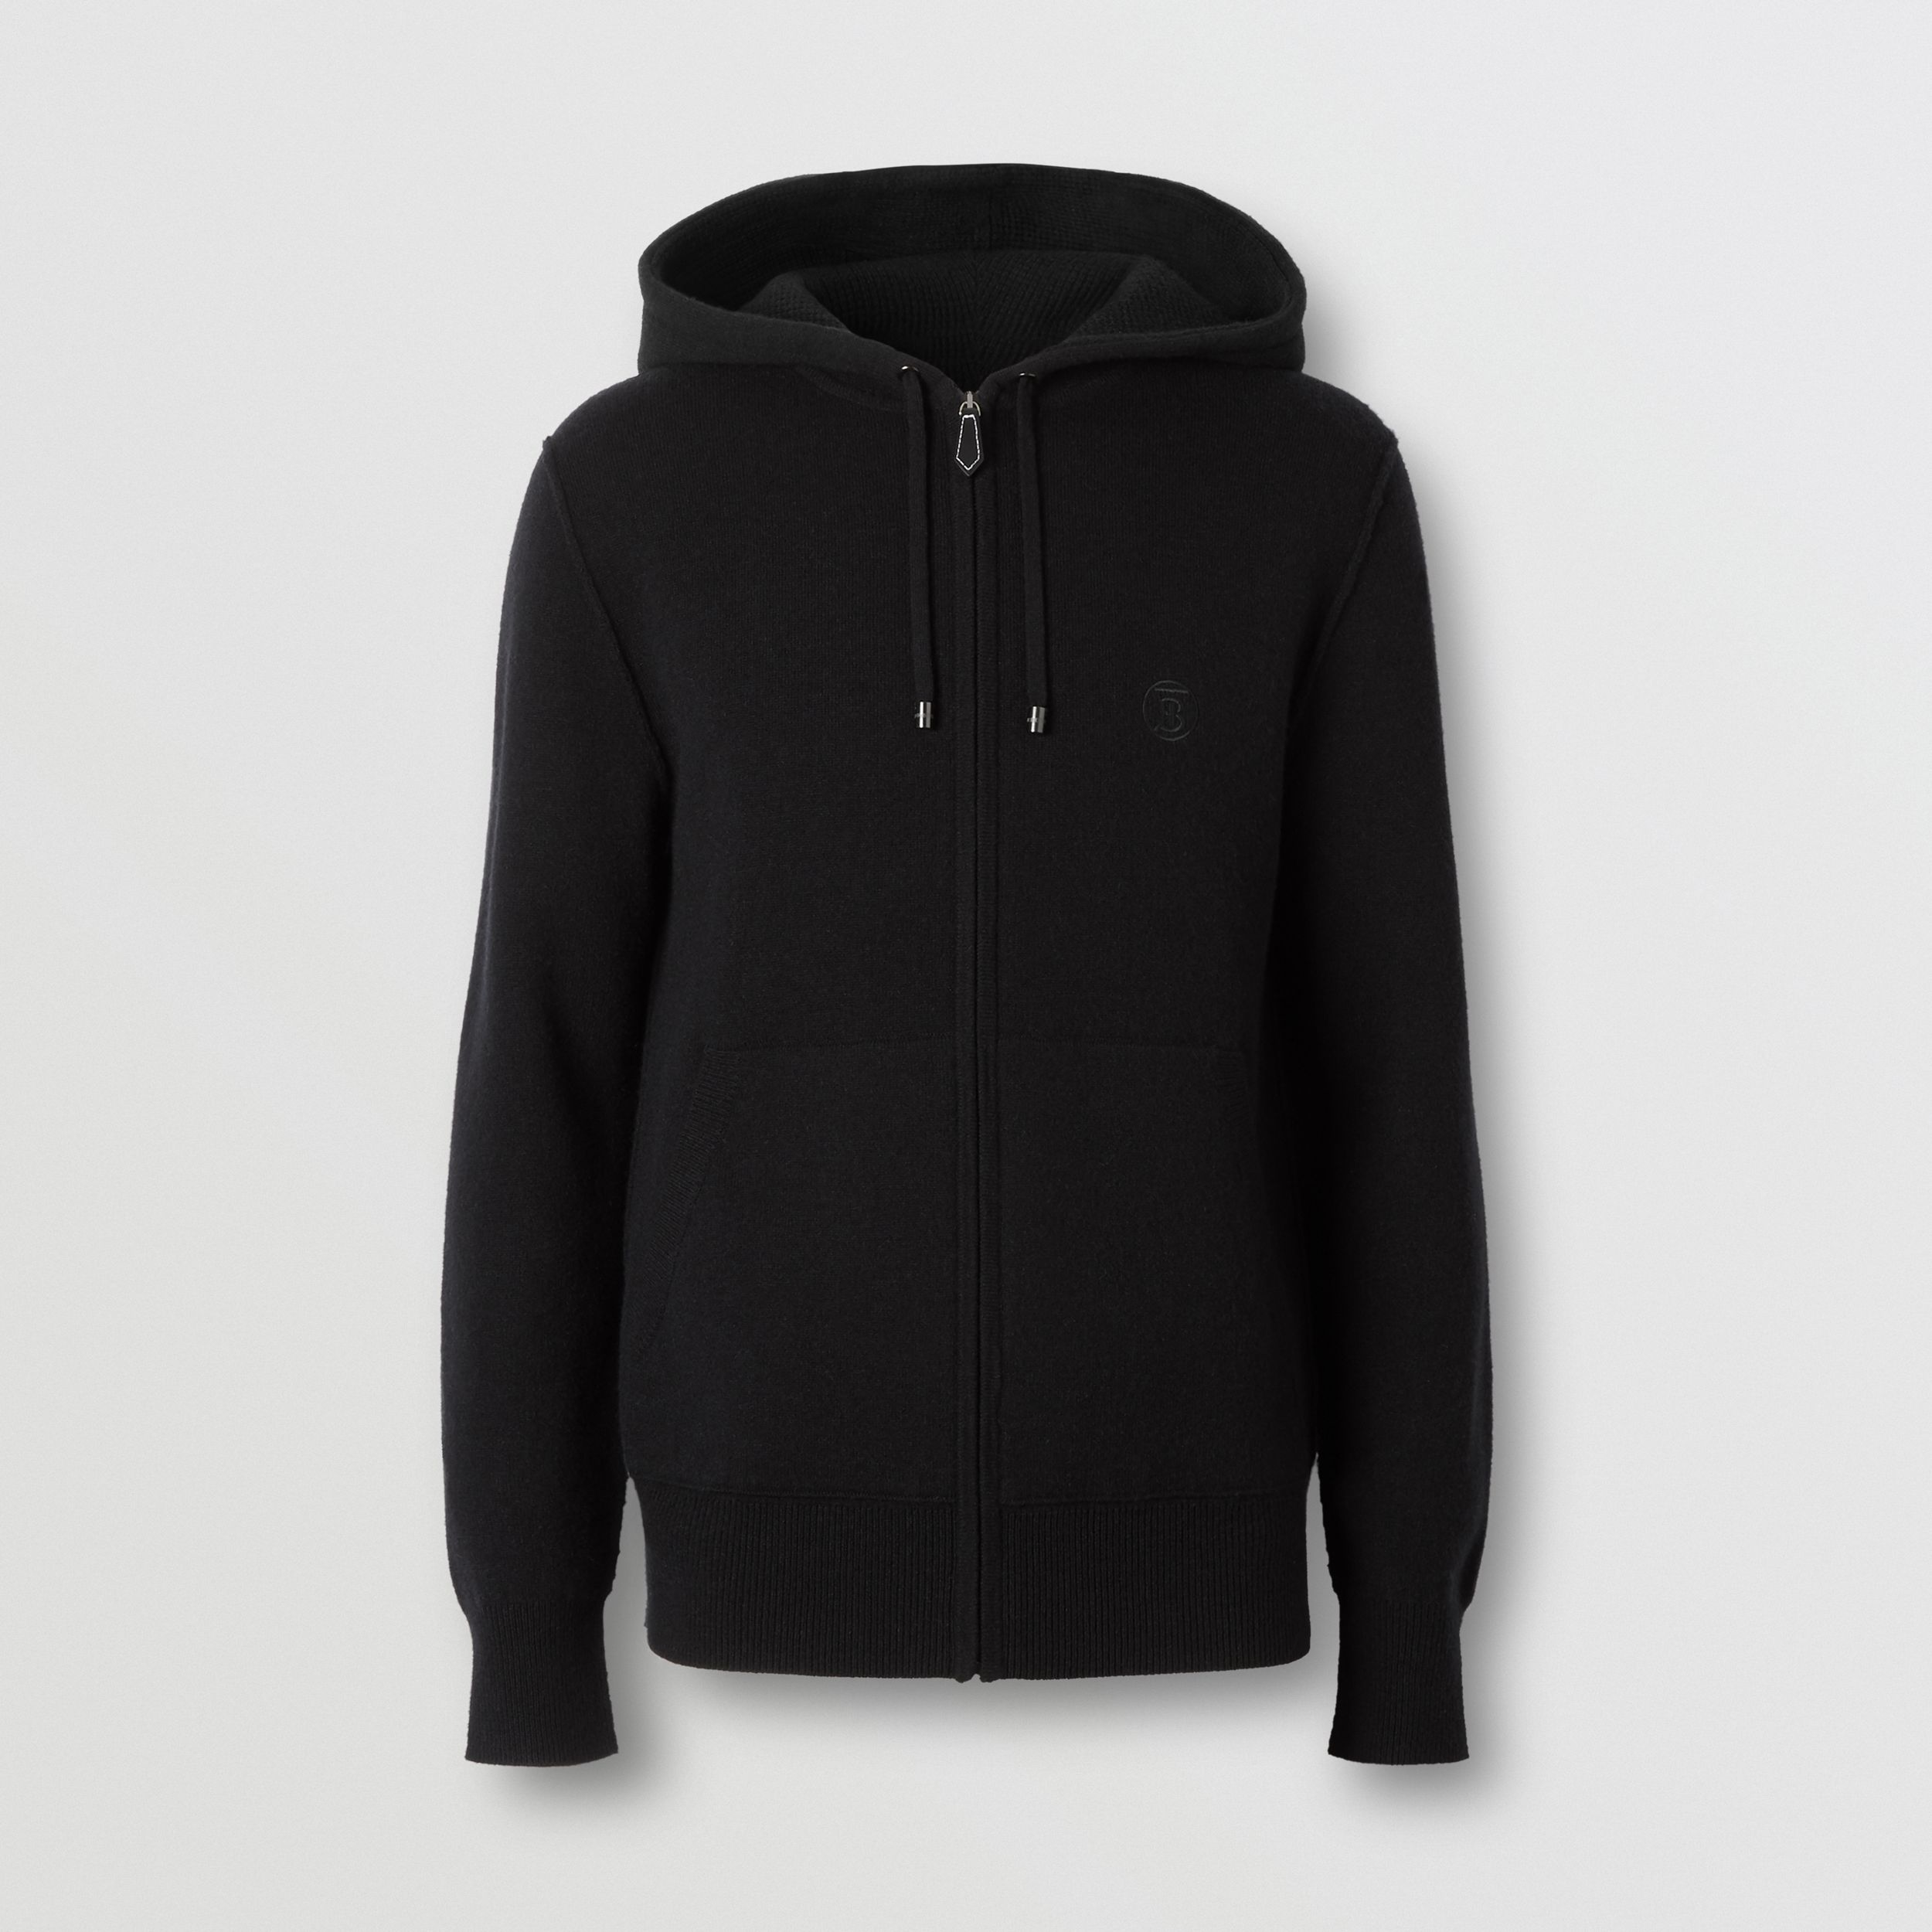 Monogram Motif Cashmere Blend Hooded Top in Black - Men | Burberry United States - 4